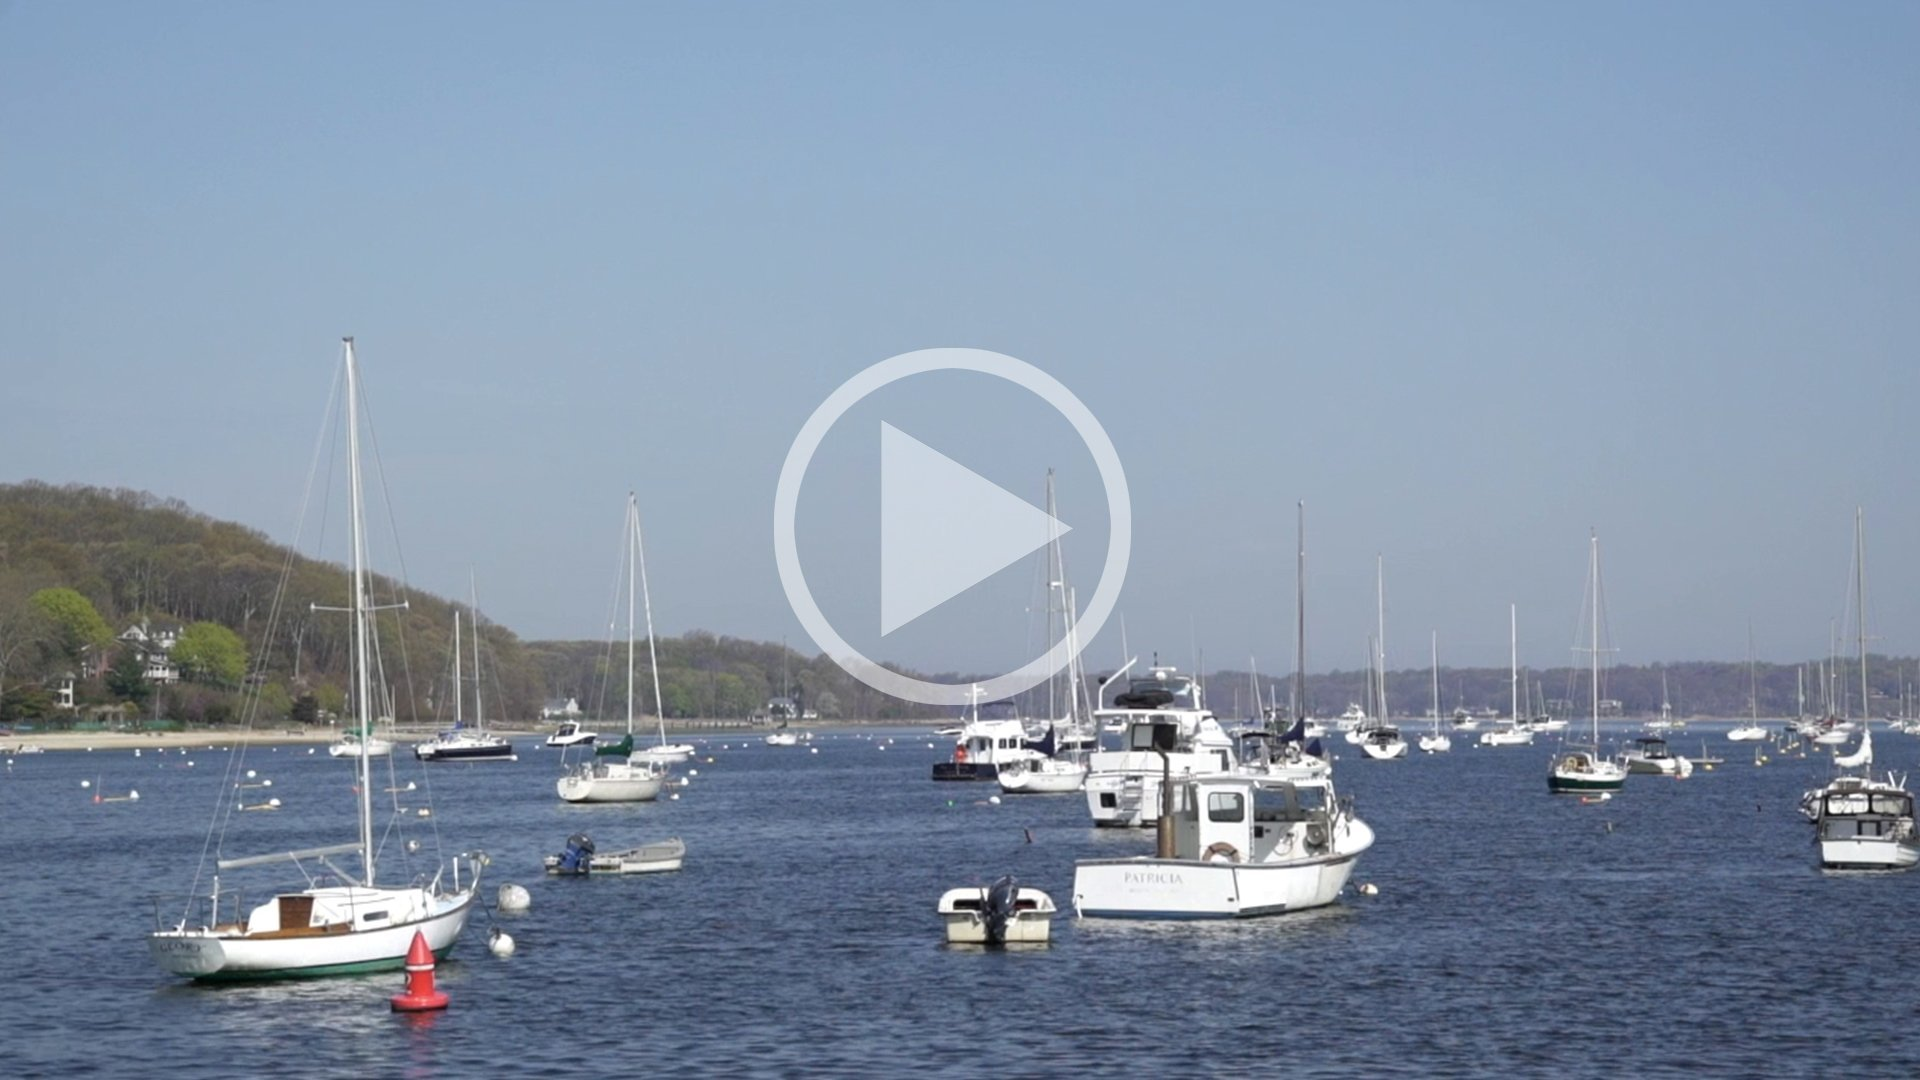 EXPLORE EAST NORTHPORT